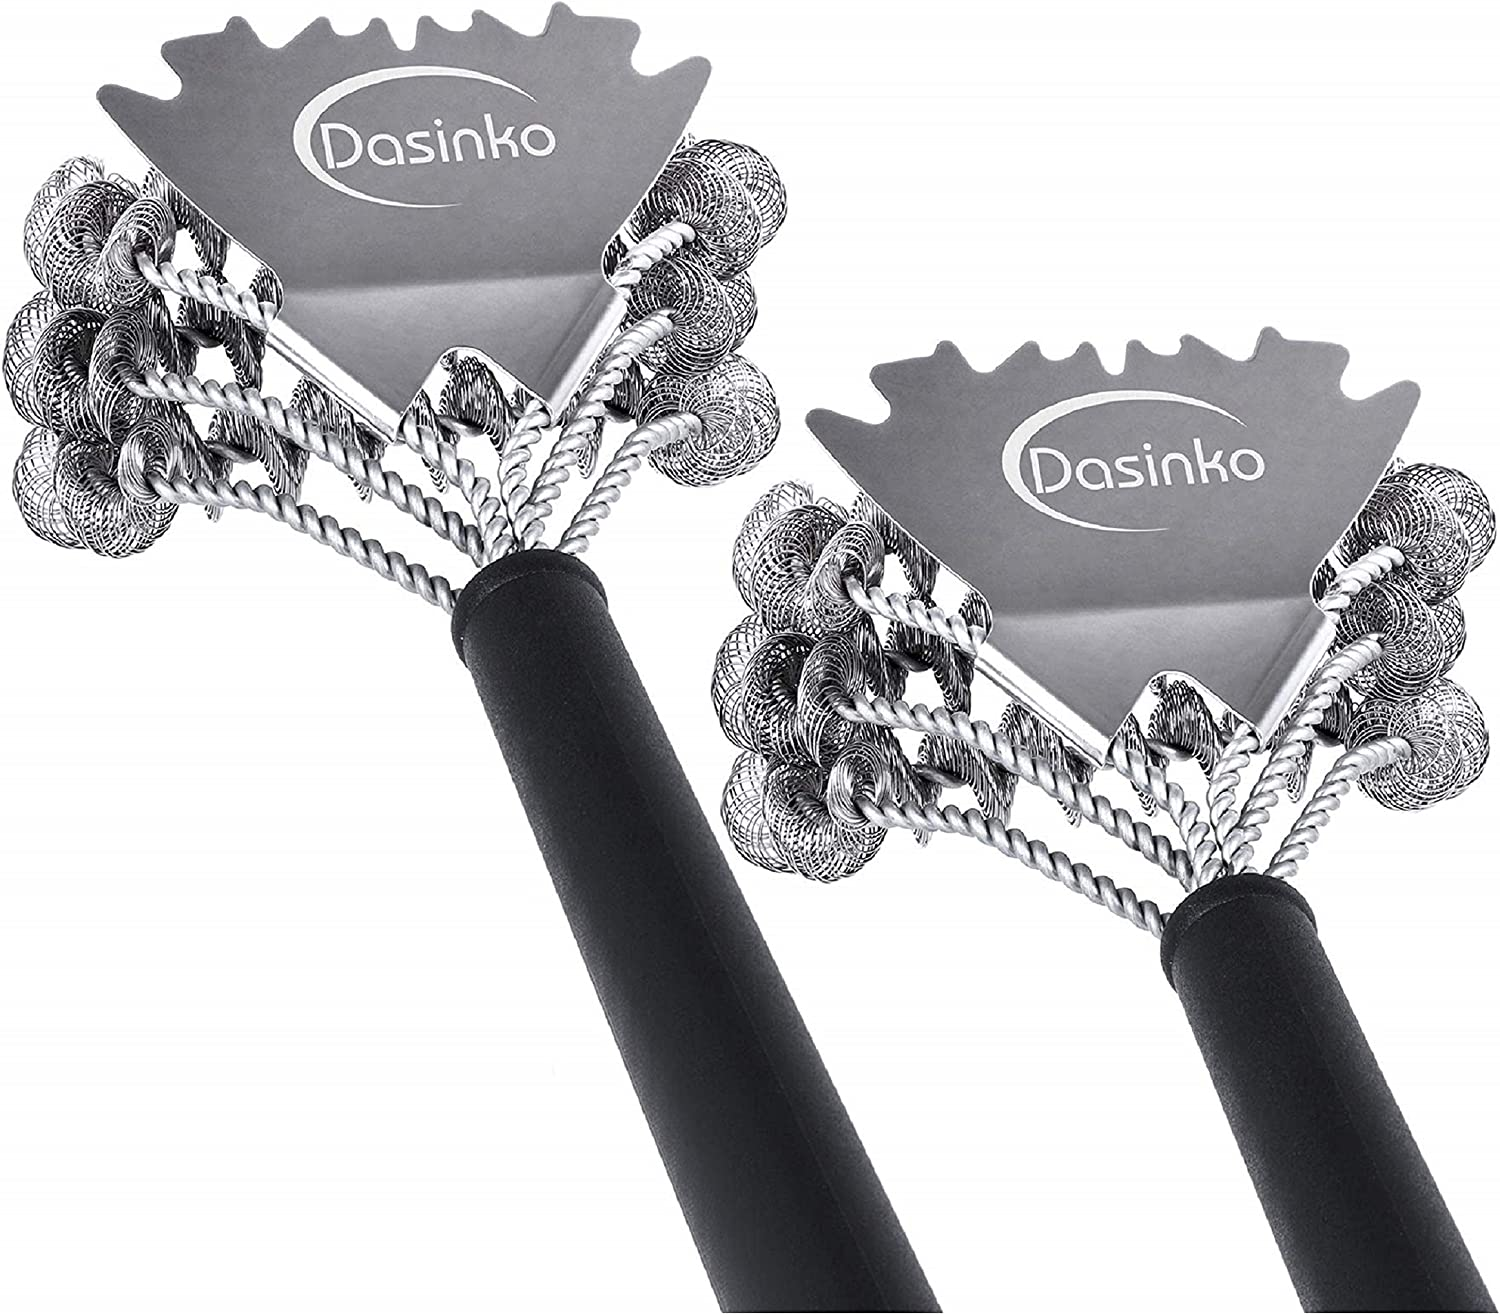 DASINKO Grill Brush Bristle Free, 2 Pack BBQ Brush and Scraper for Weber Grill Cleaning, Heavy Duty Stainless Steel Barbecue Scraper Tool, Safe Cleaner Long Handle Barbeque Accessories Set of 2